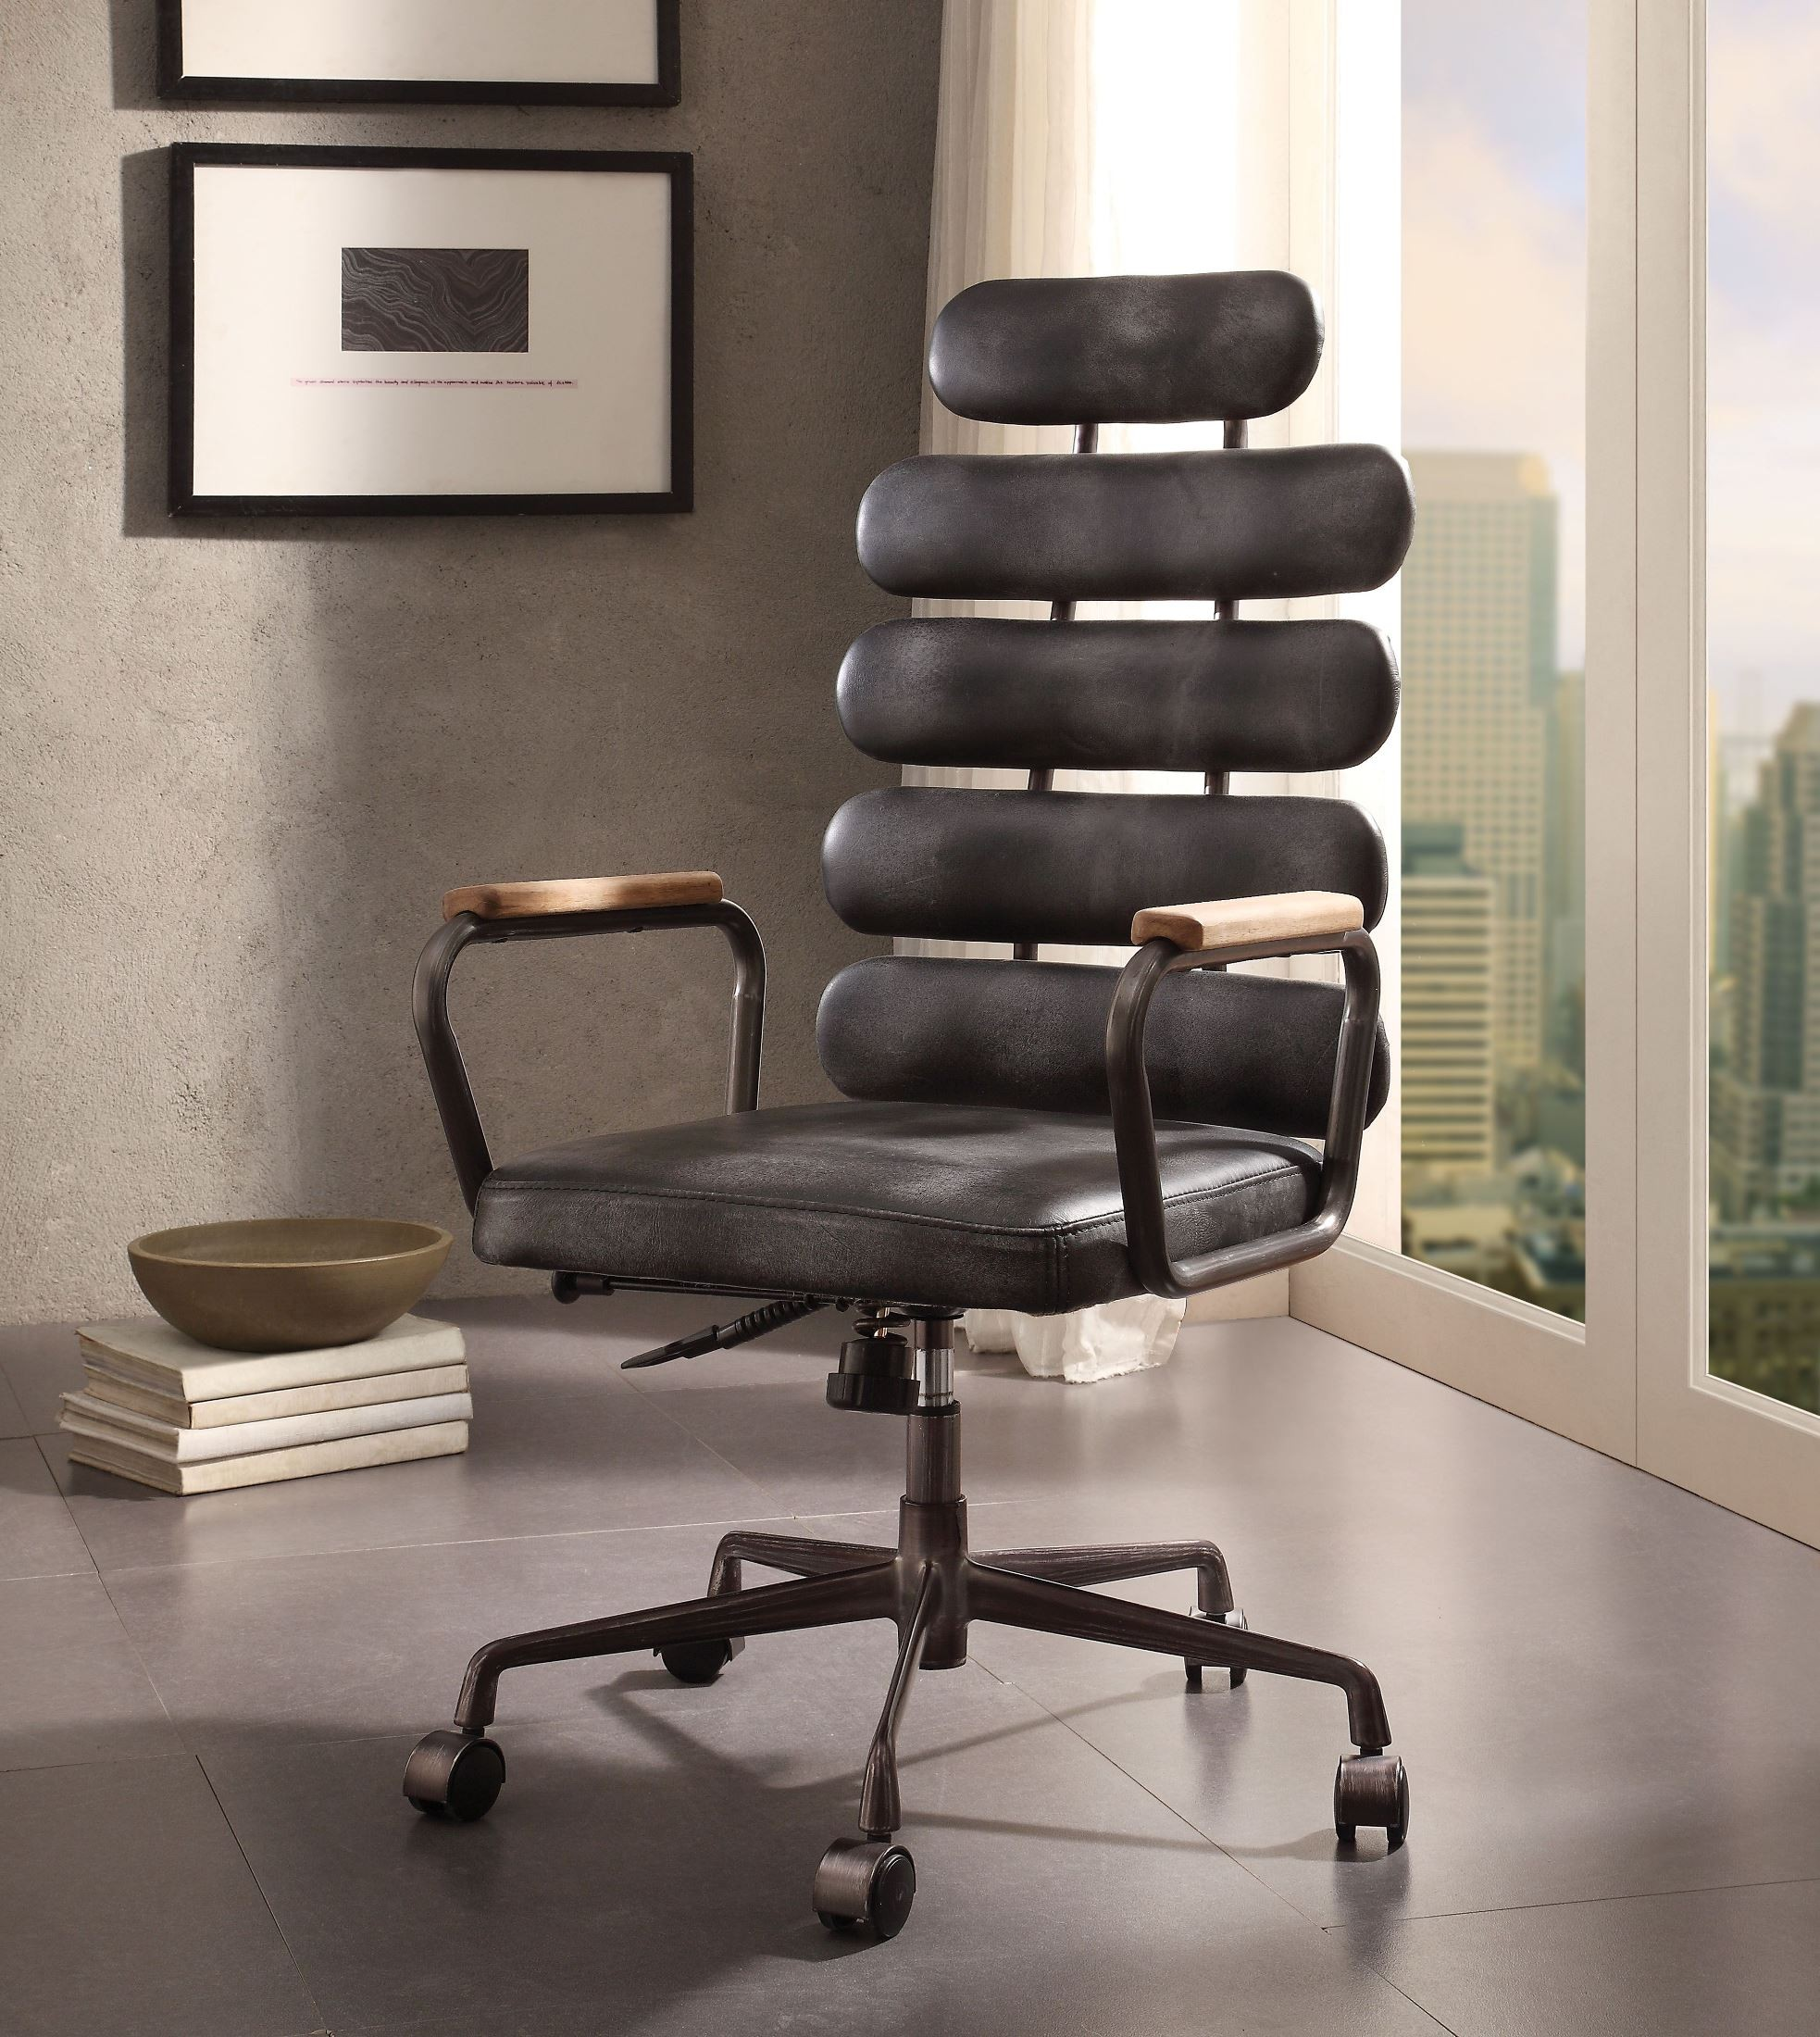 Swell Calan Vintage Black Leather Executive Office Chair Ncnpc Chair Design For Home Ncnpcorg